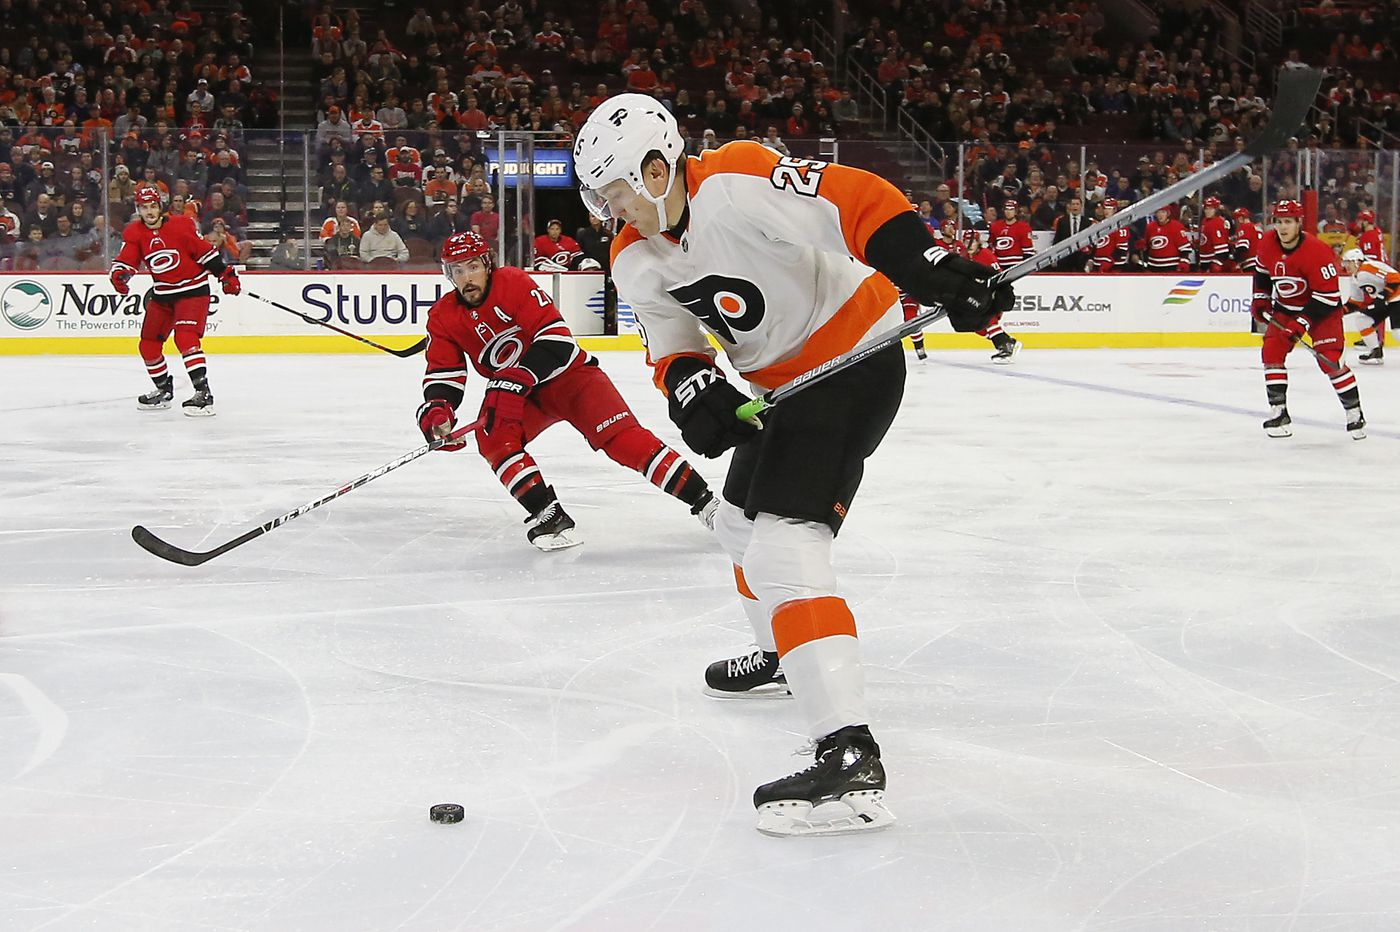 Flyers' James van Riemsdyk, trying to find his game, will go from fourth to top line